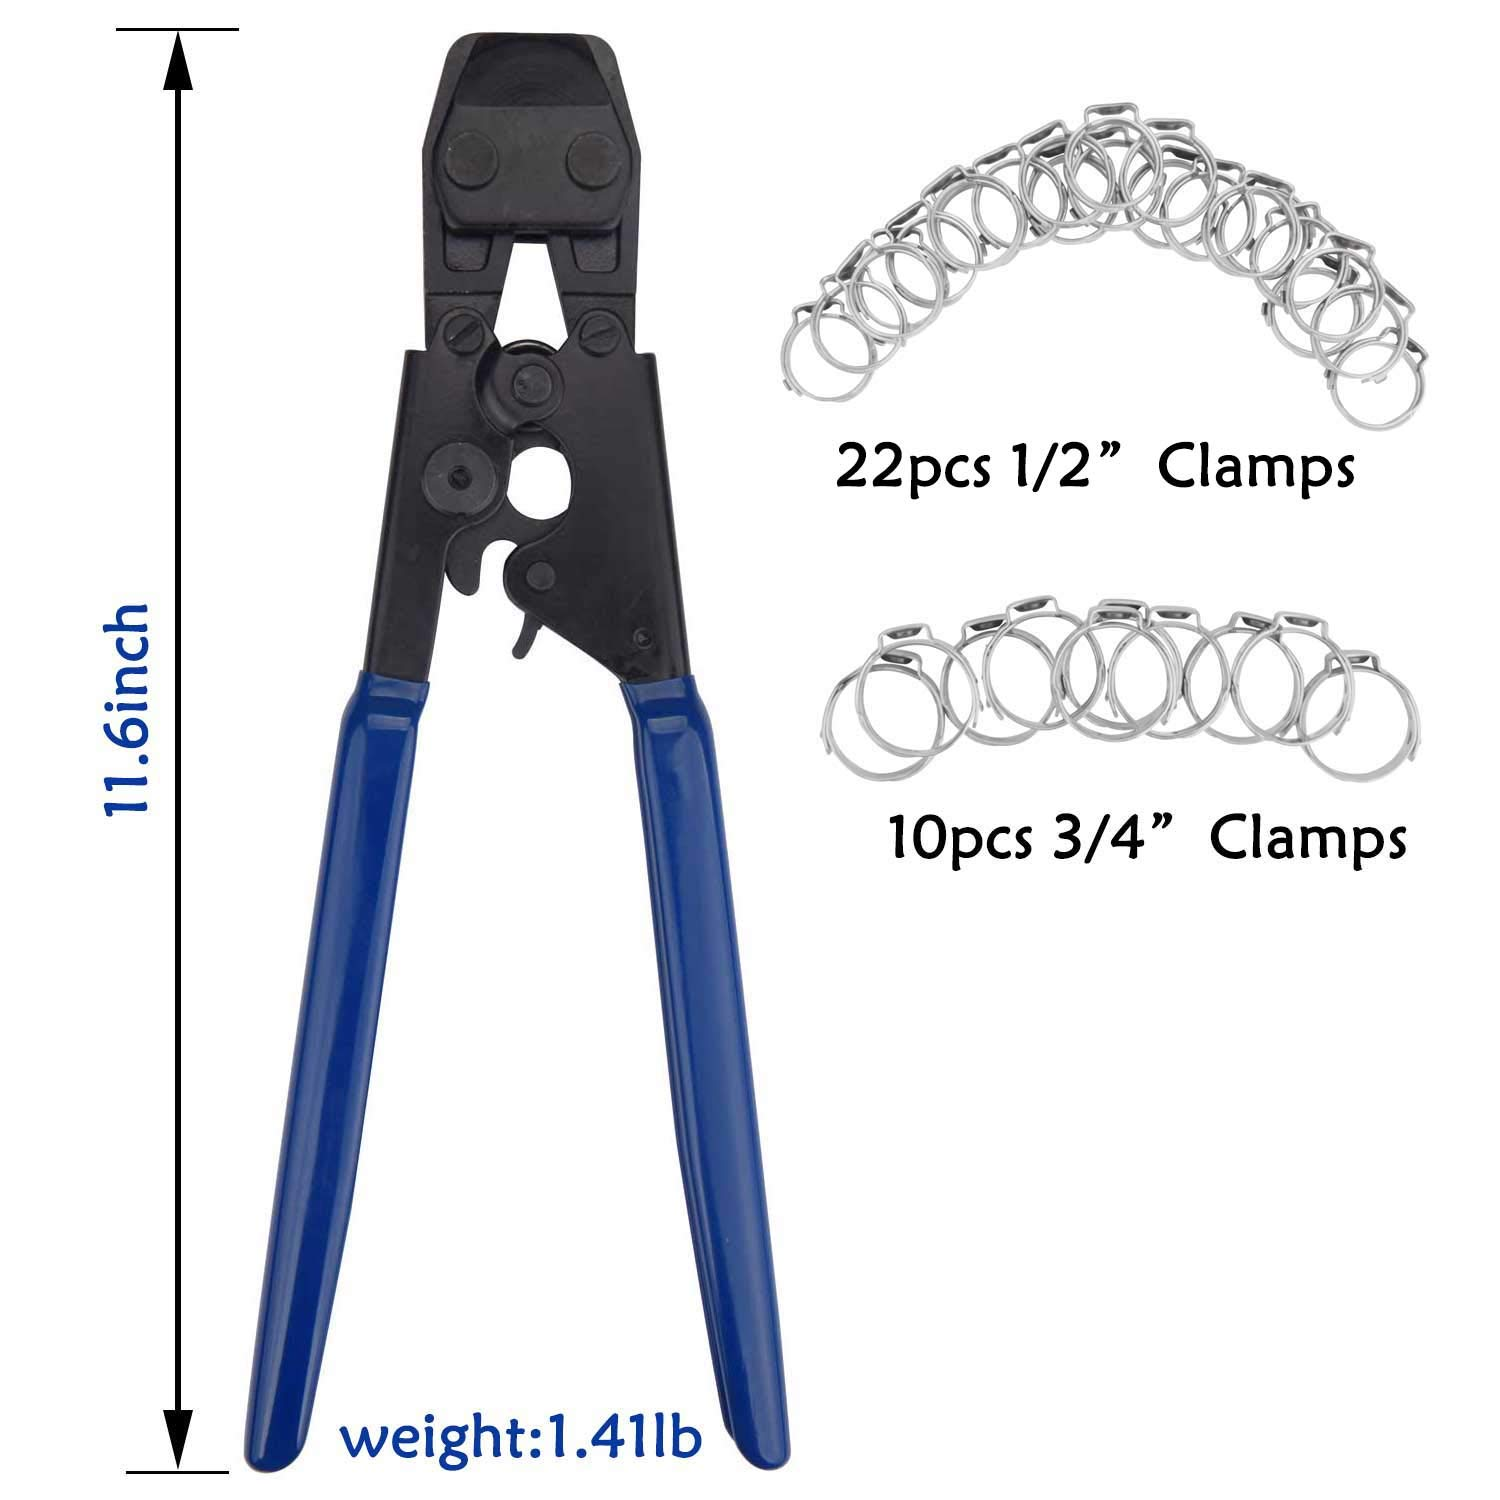 DUSICHIN DUS-501 PEX Crimping Tools Cinch Clamp Tools for Fastening Stainless Clamps Sizes from 3/8 Inch - 1 inch with 1/2'' 22PCS and 3/4'' 10PCS SS PEX Clamps